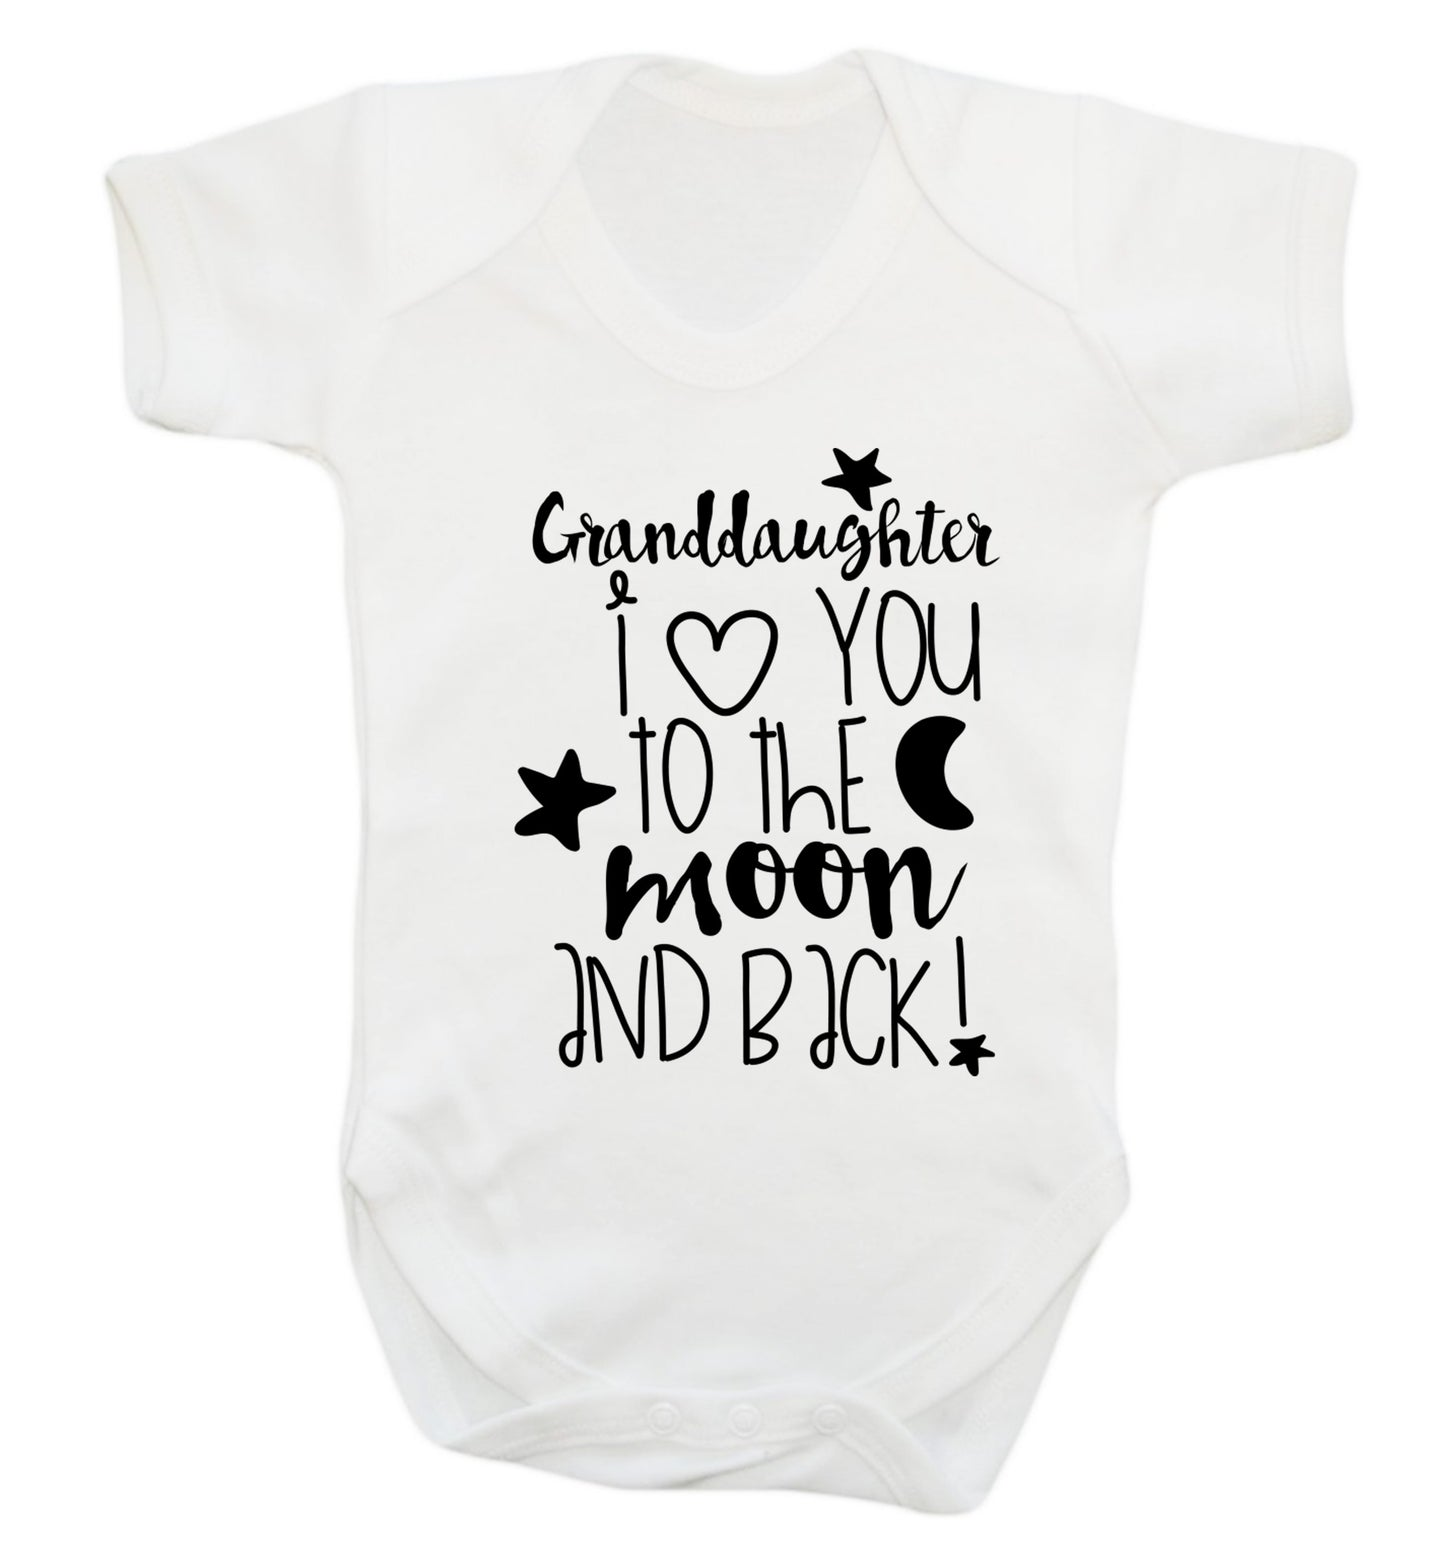 Granddaughter I love you to the moon and back Baby Vest white 18-24 months